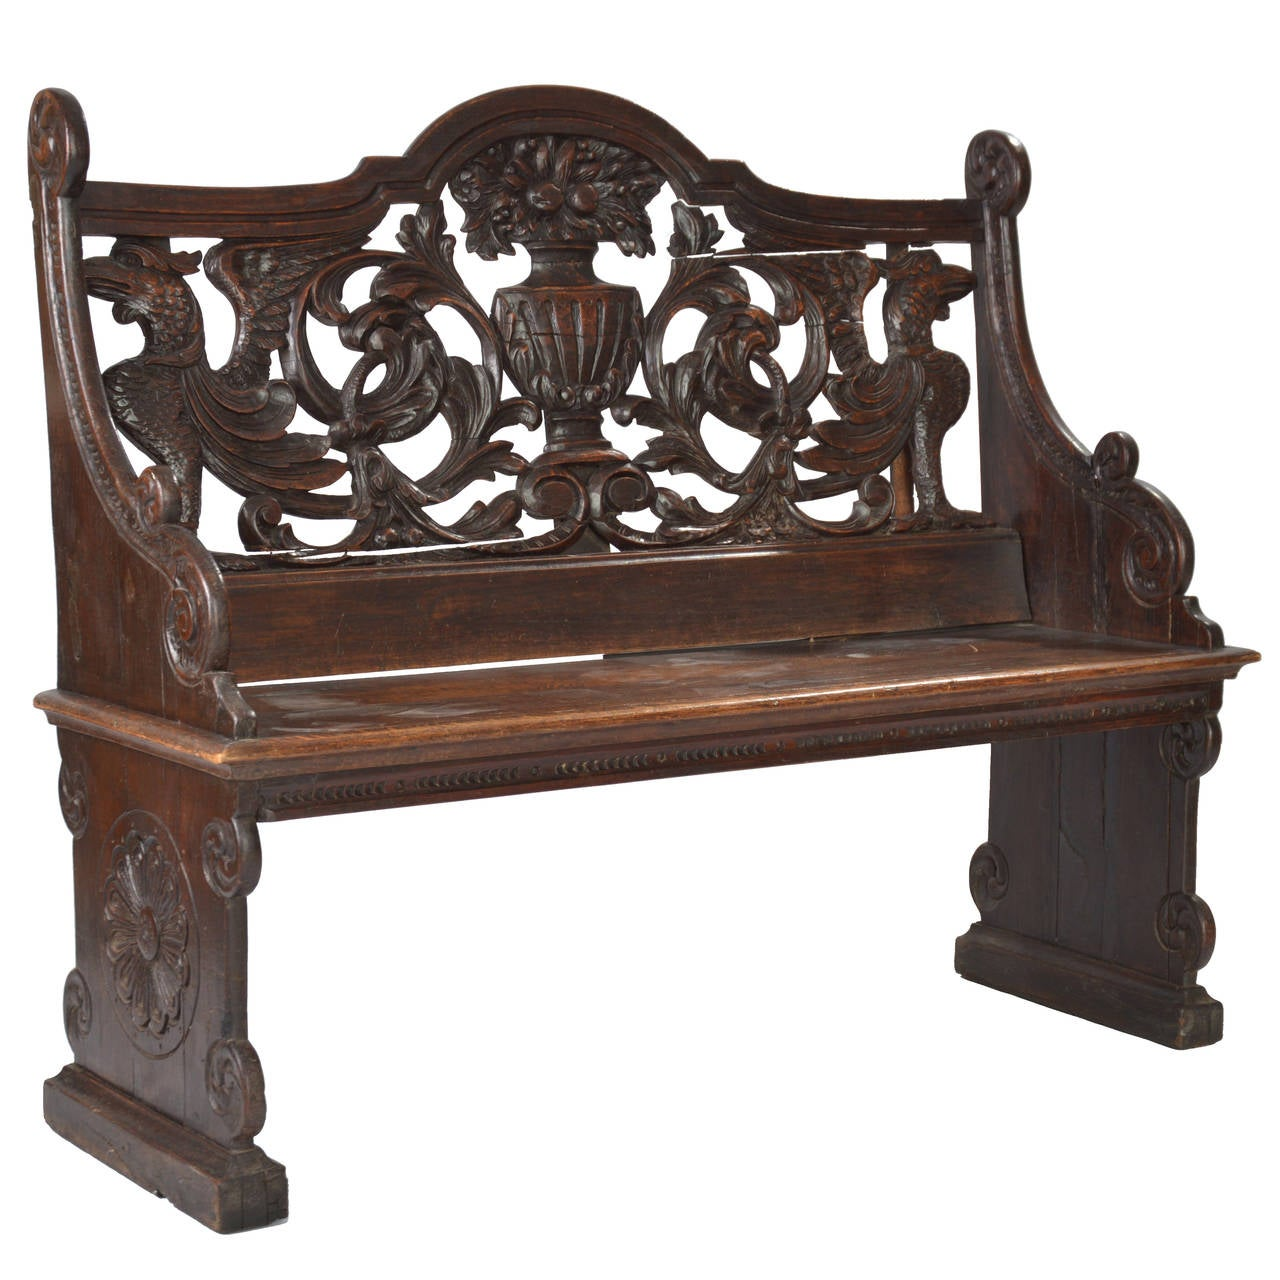 Rare th century carved italian wooden bench at stdibs